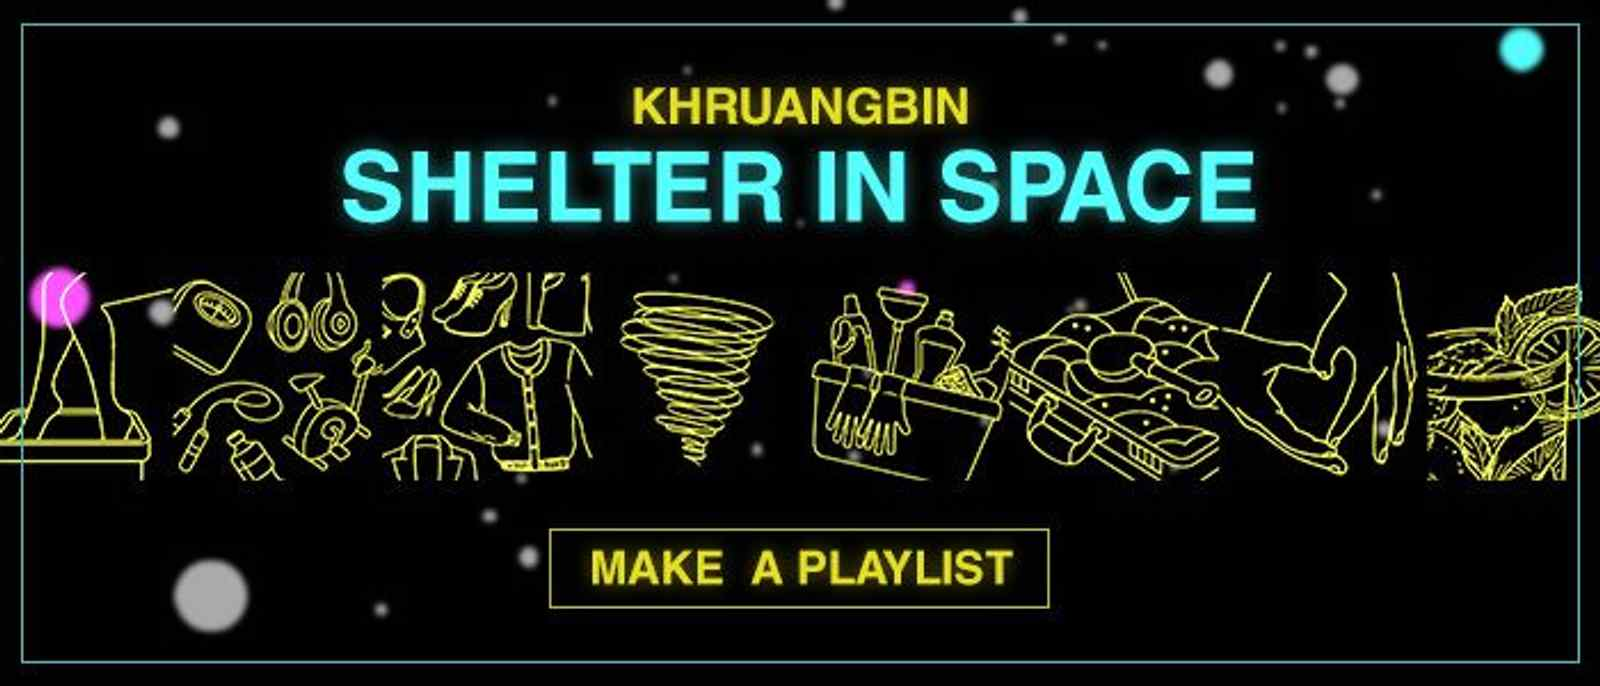 AirKhruang 2.0 - Shelter In Space